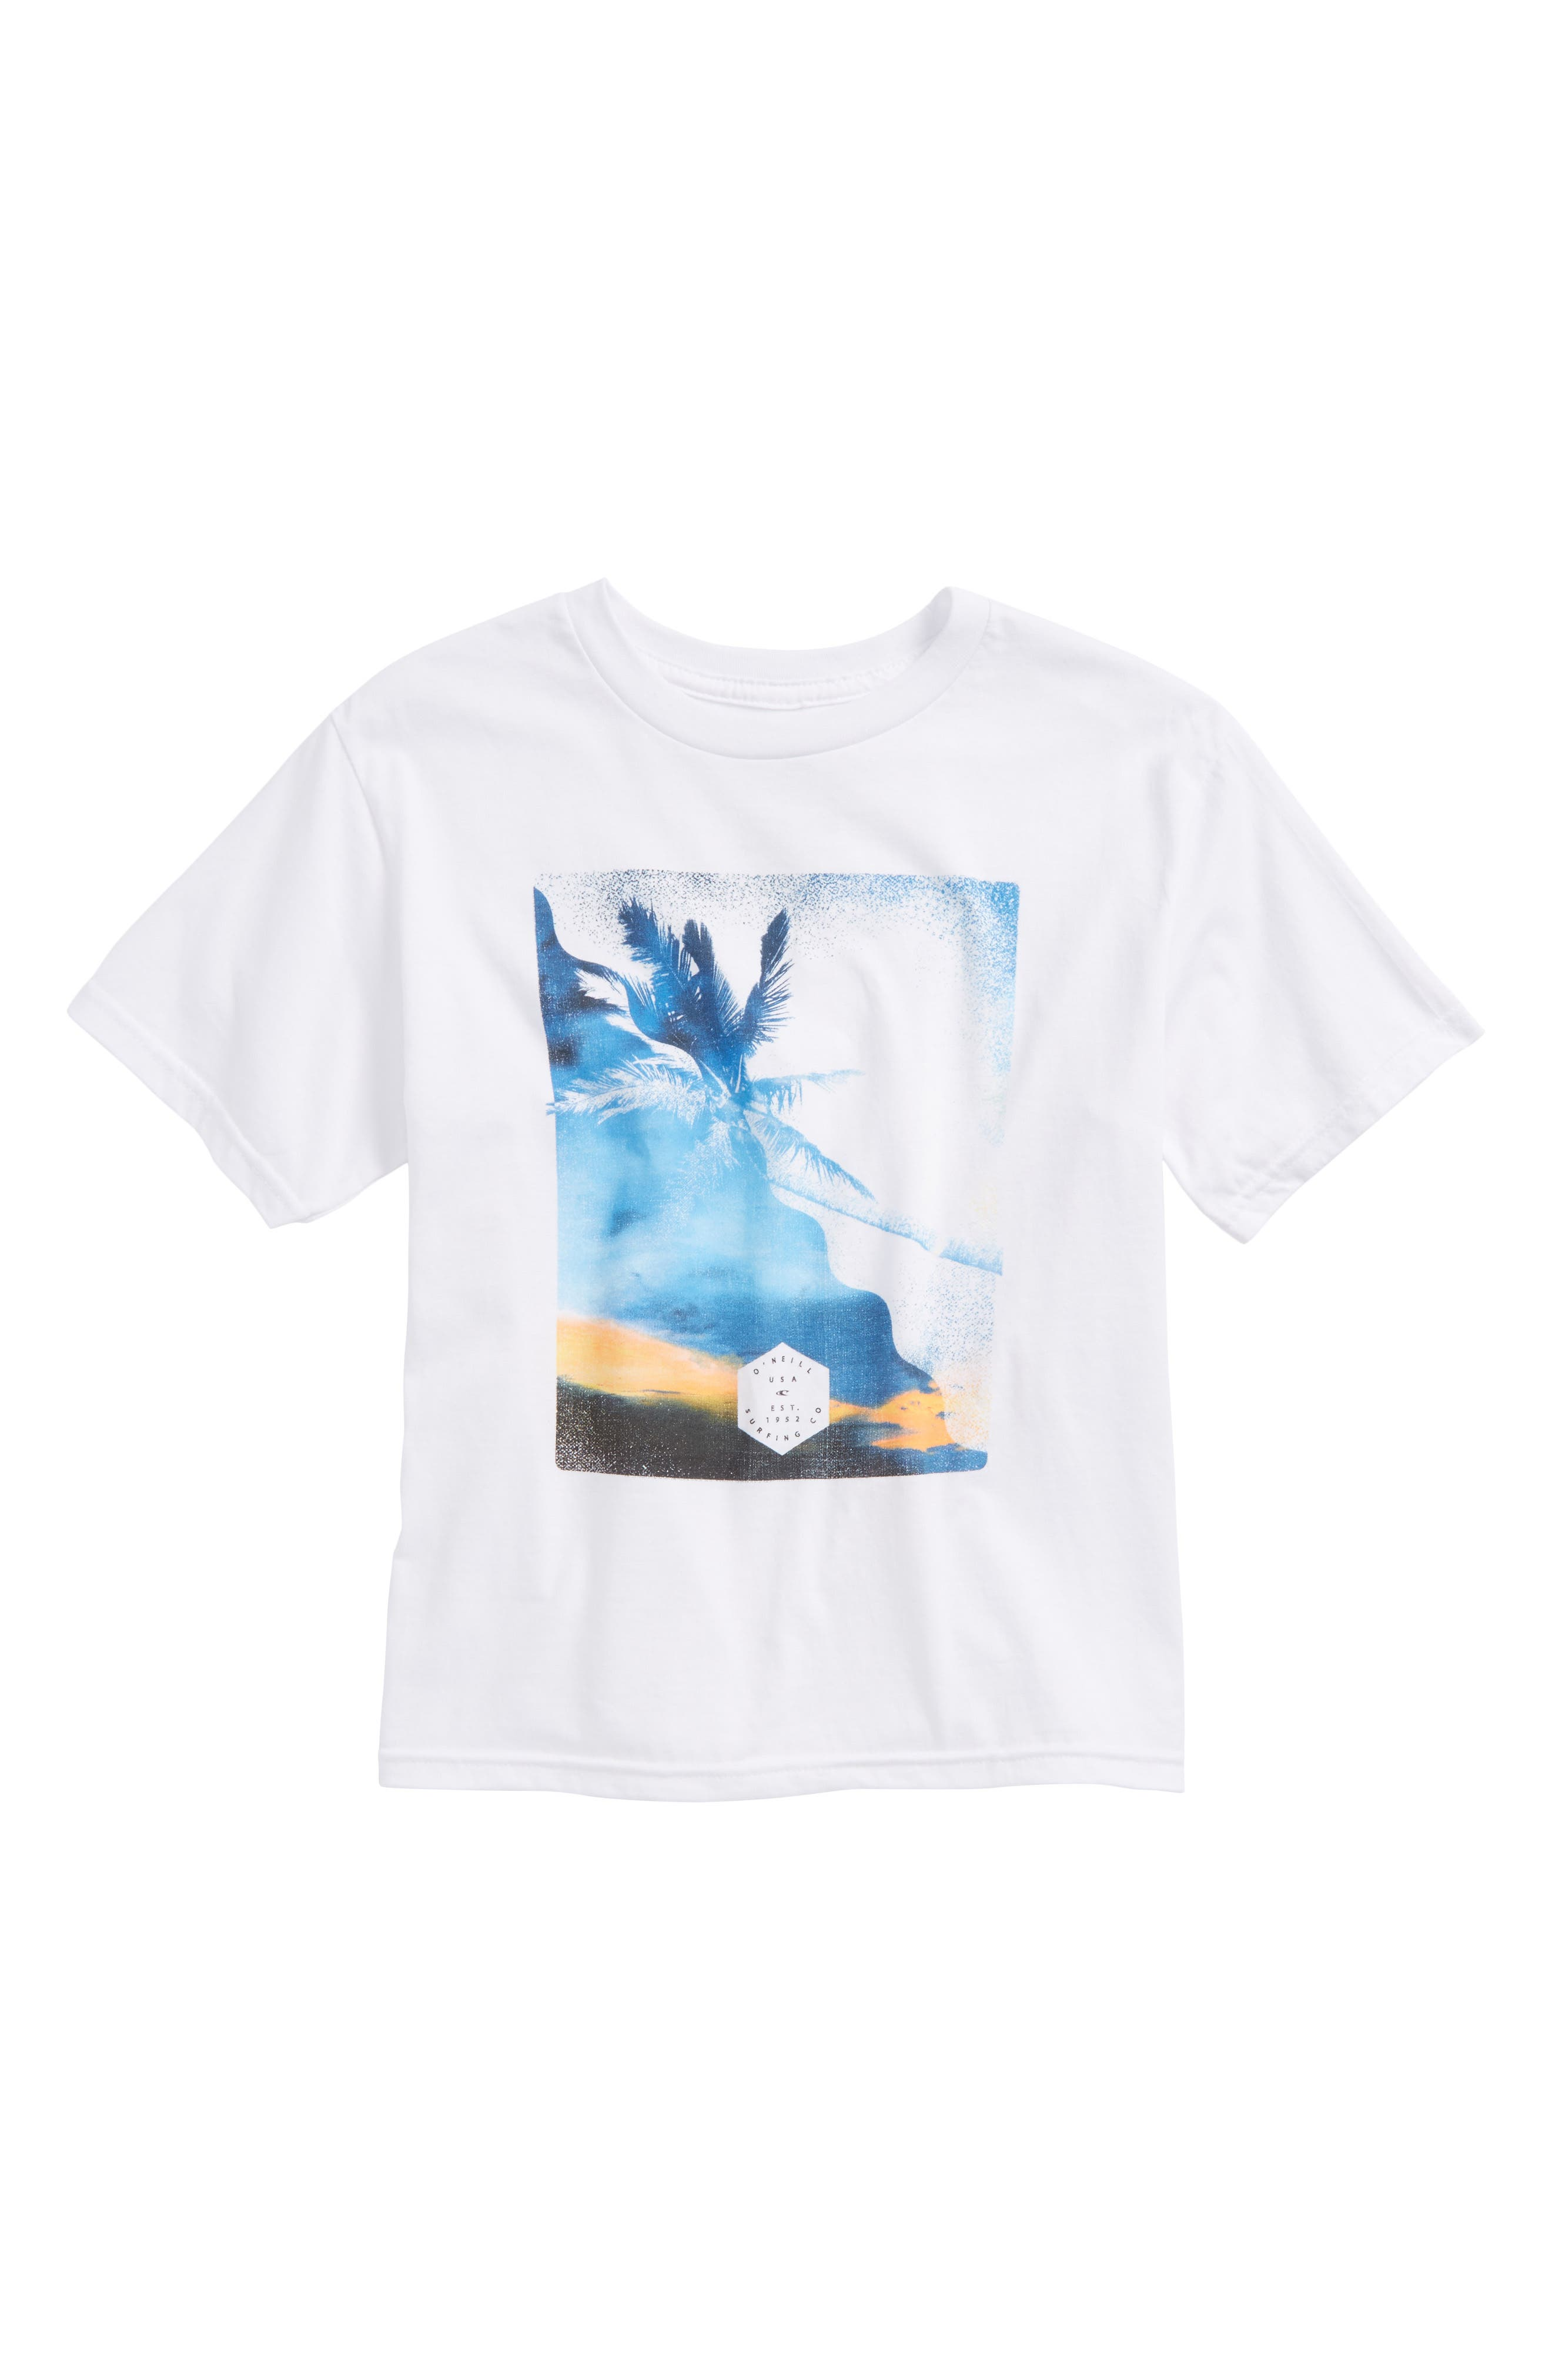 Canopy Graphic T-Shirt,                         Main,                         color, White